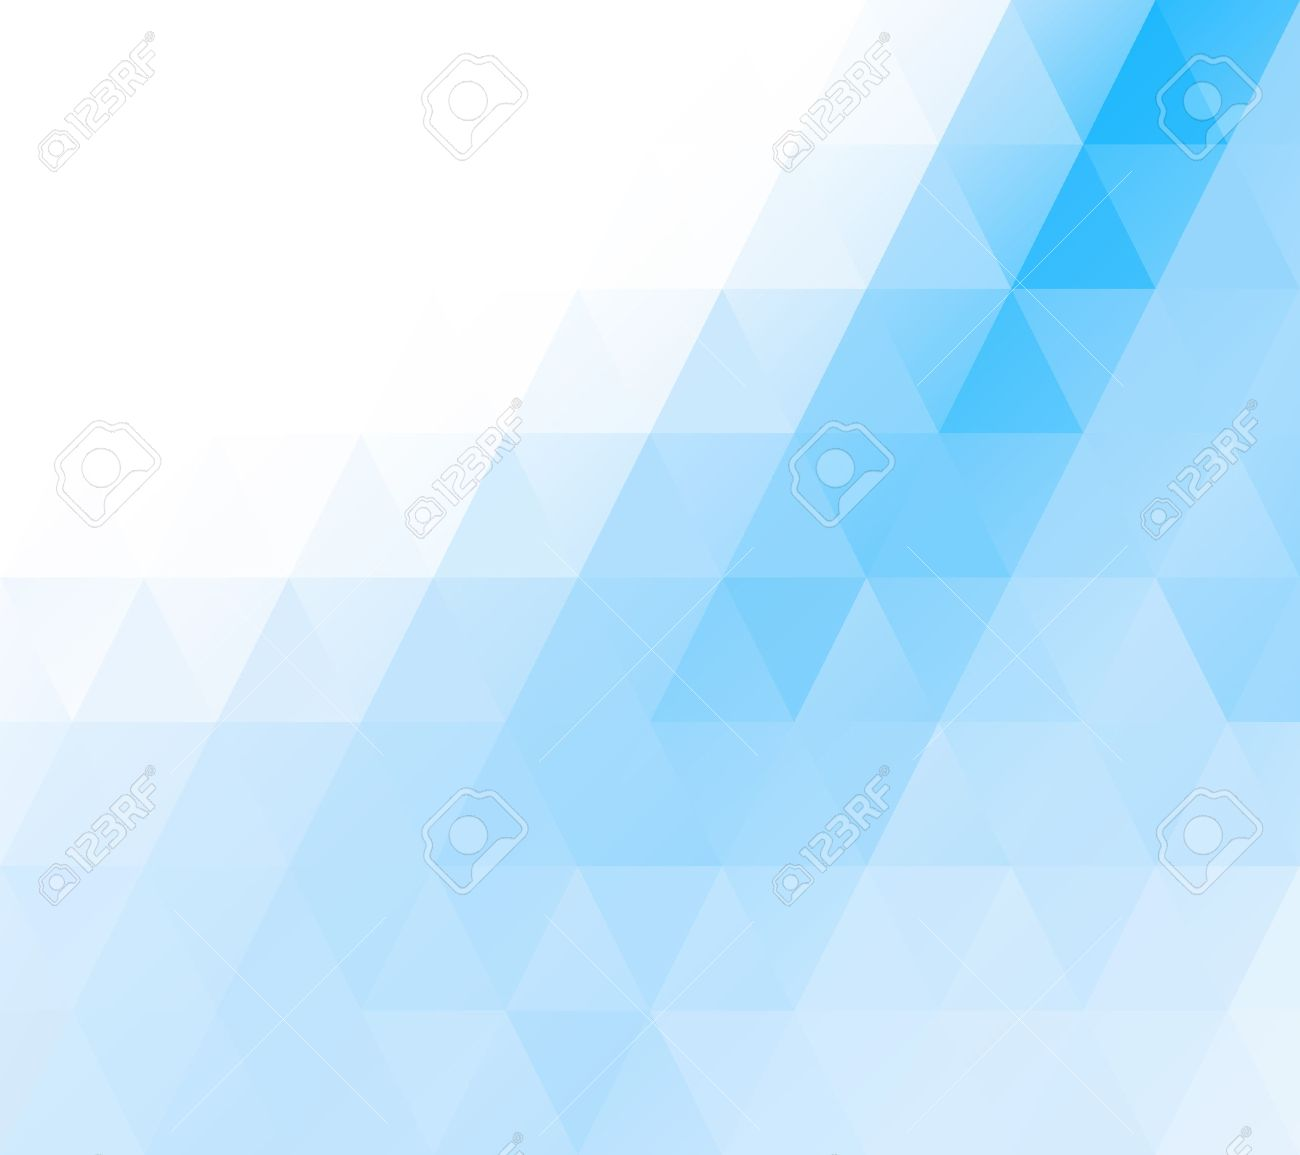 Blue White Mosaic Background, Creative Design Templates Royalty Free ...